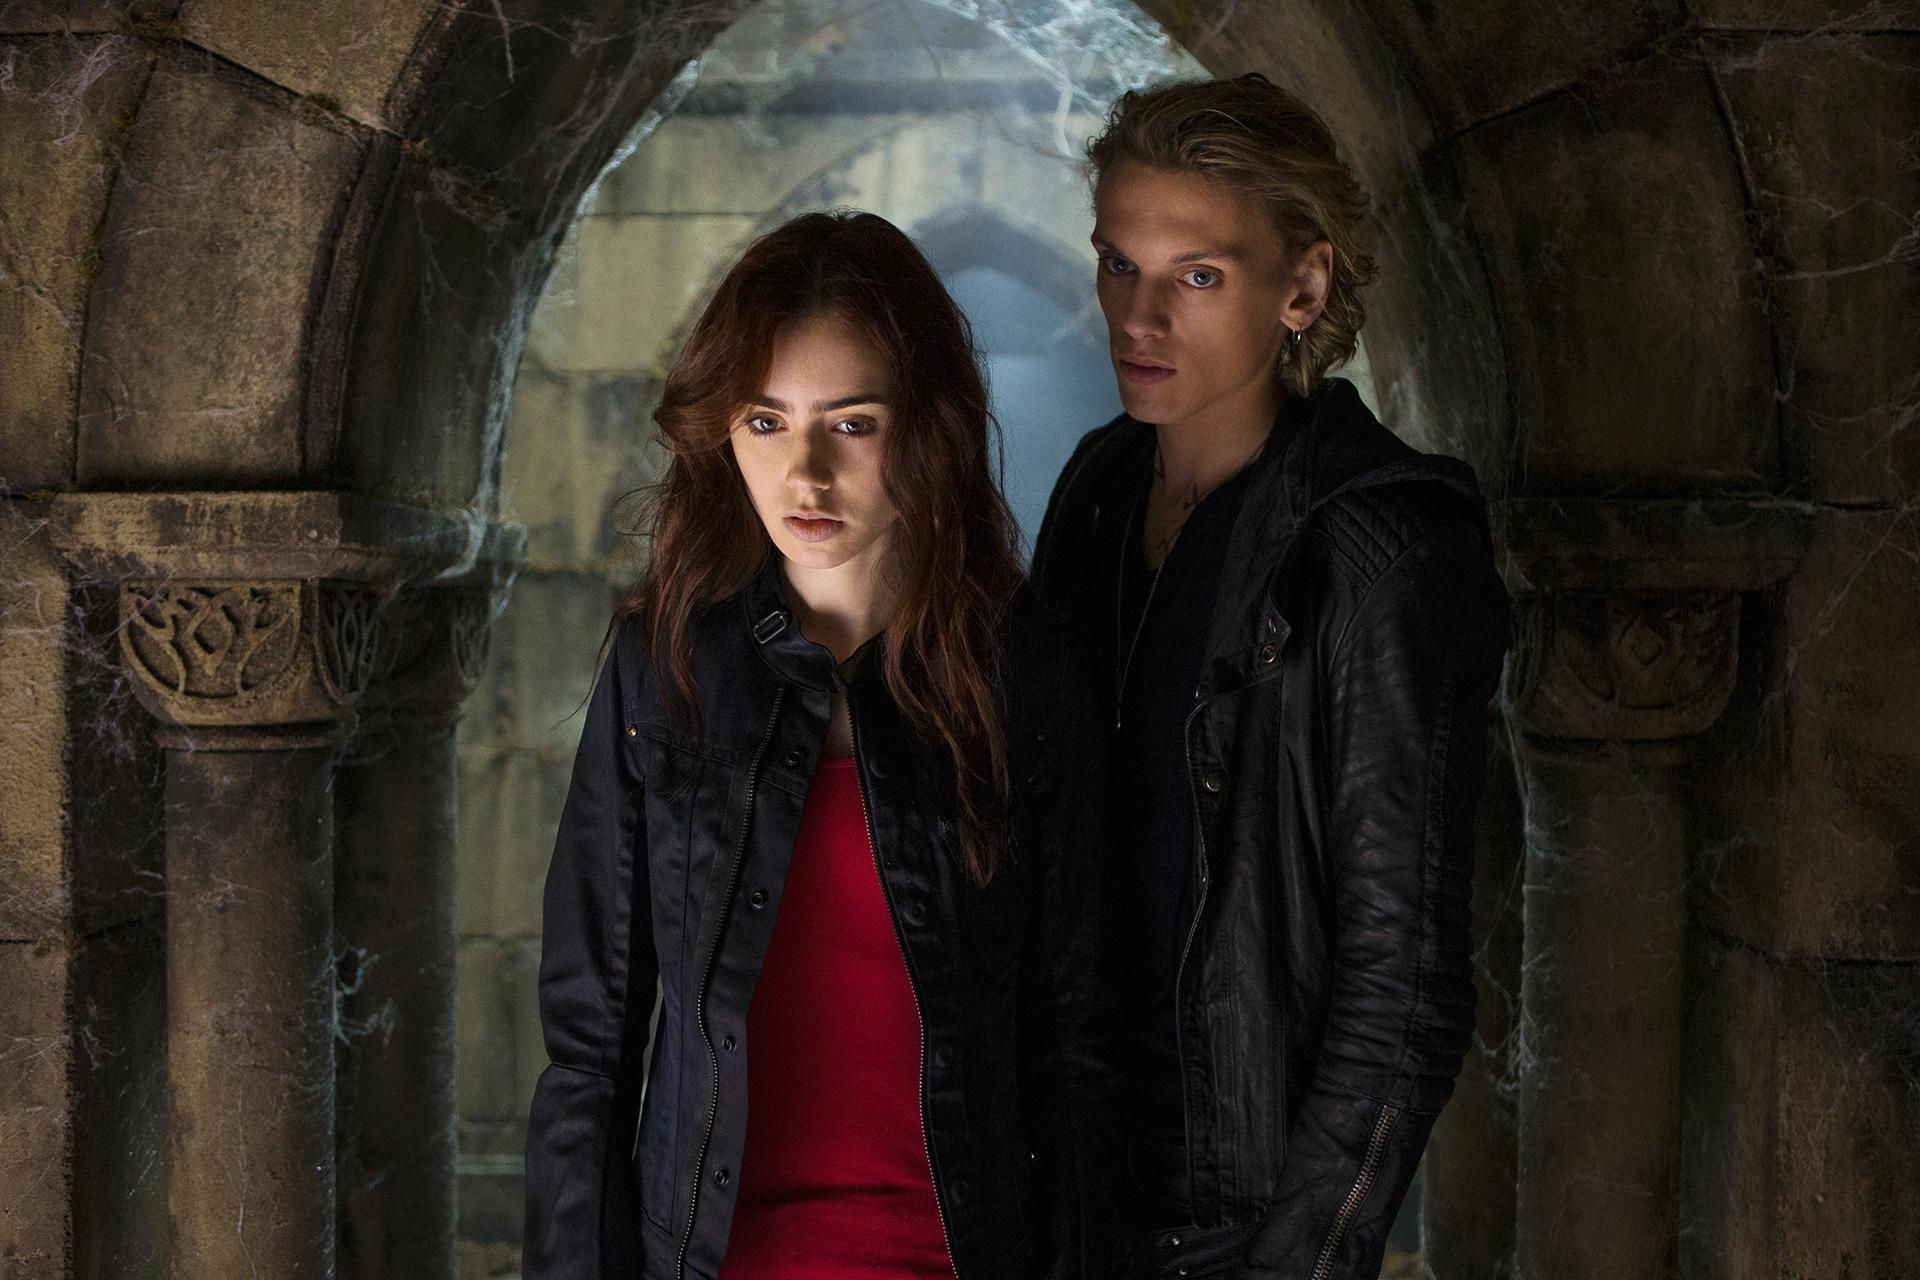 the mortal instruments: city of bones | mister smith